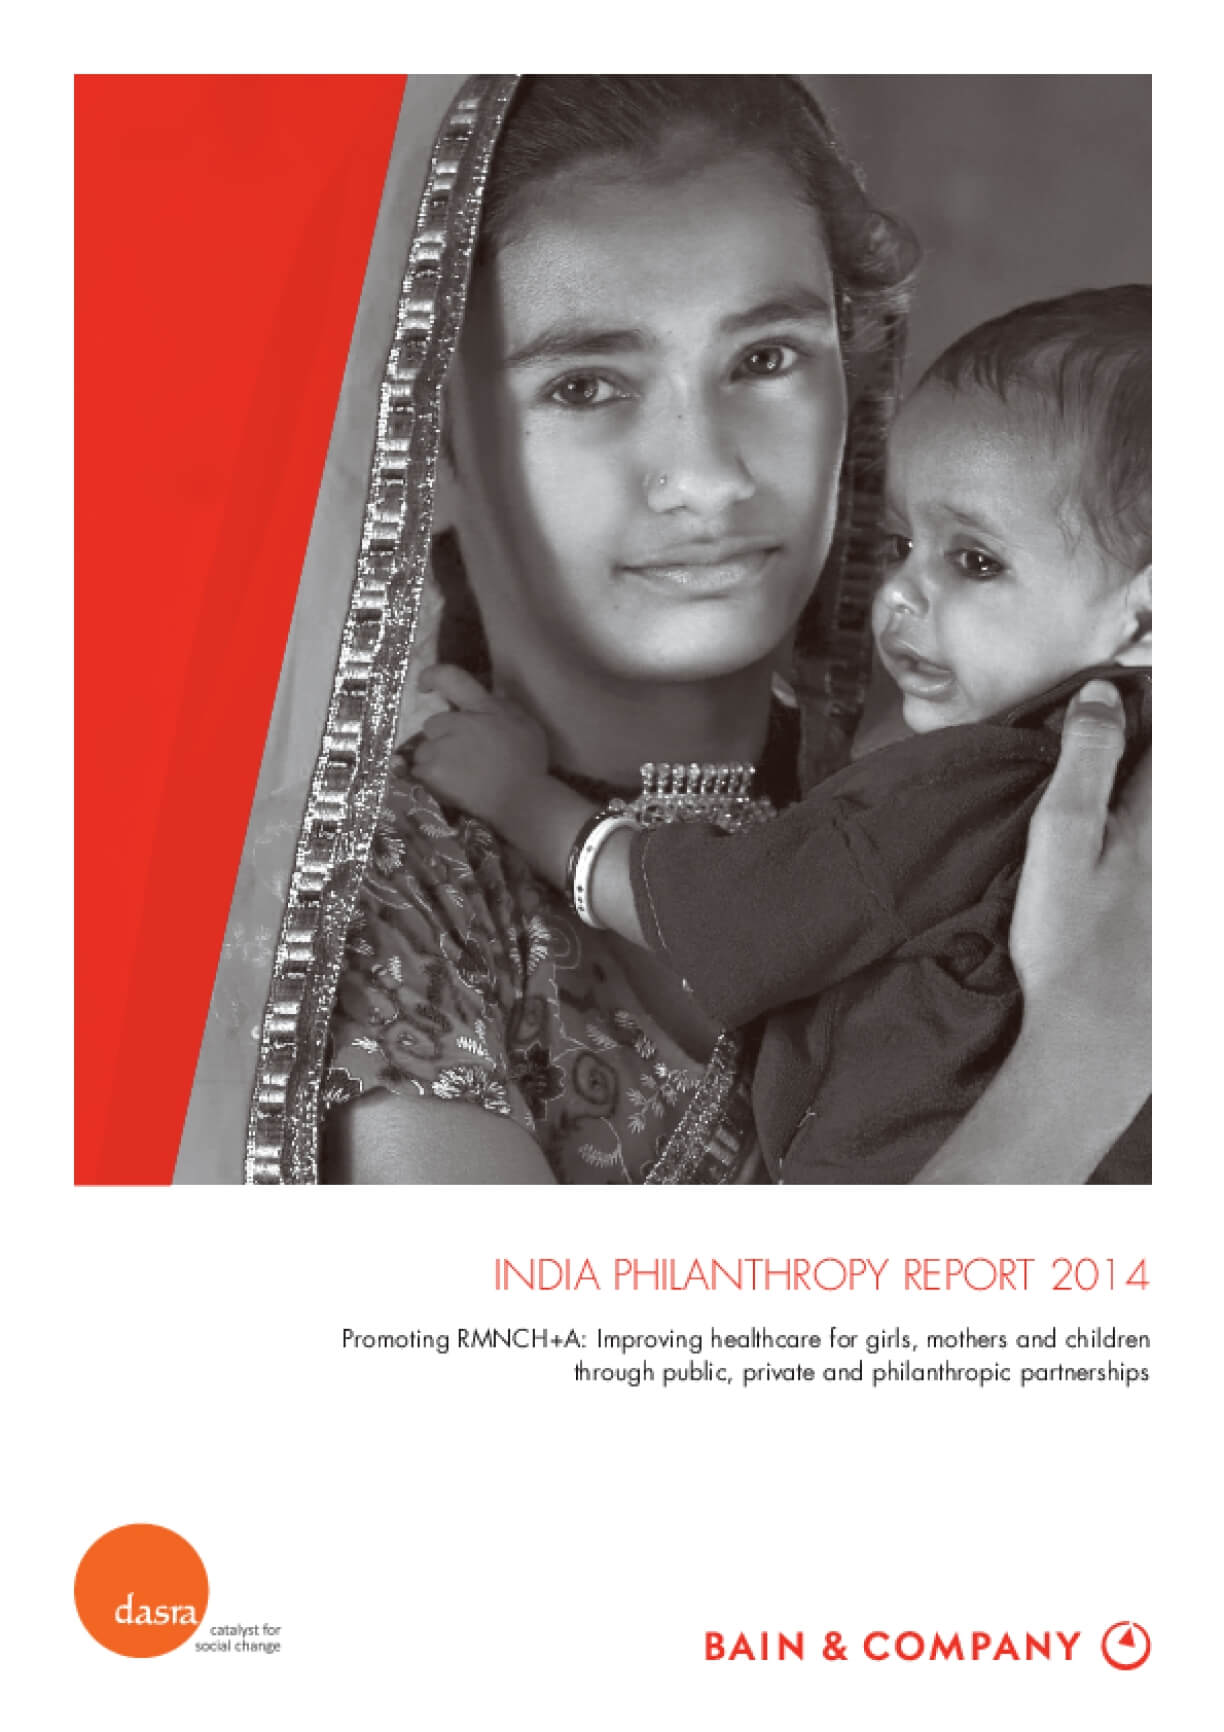 India Philanthropy Report 2014